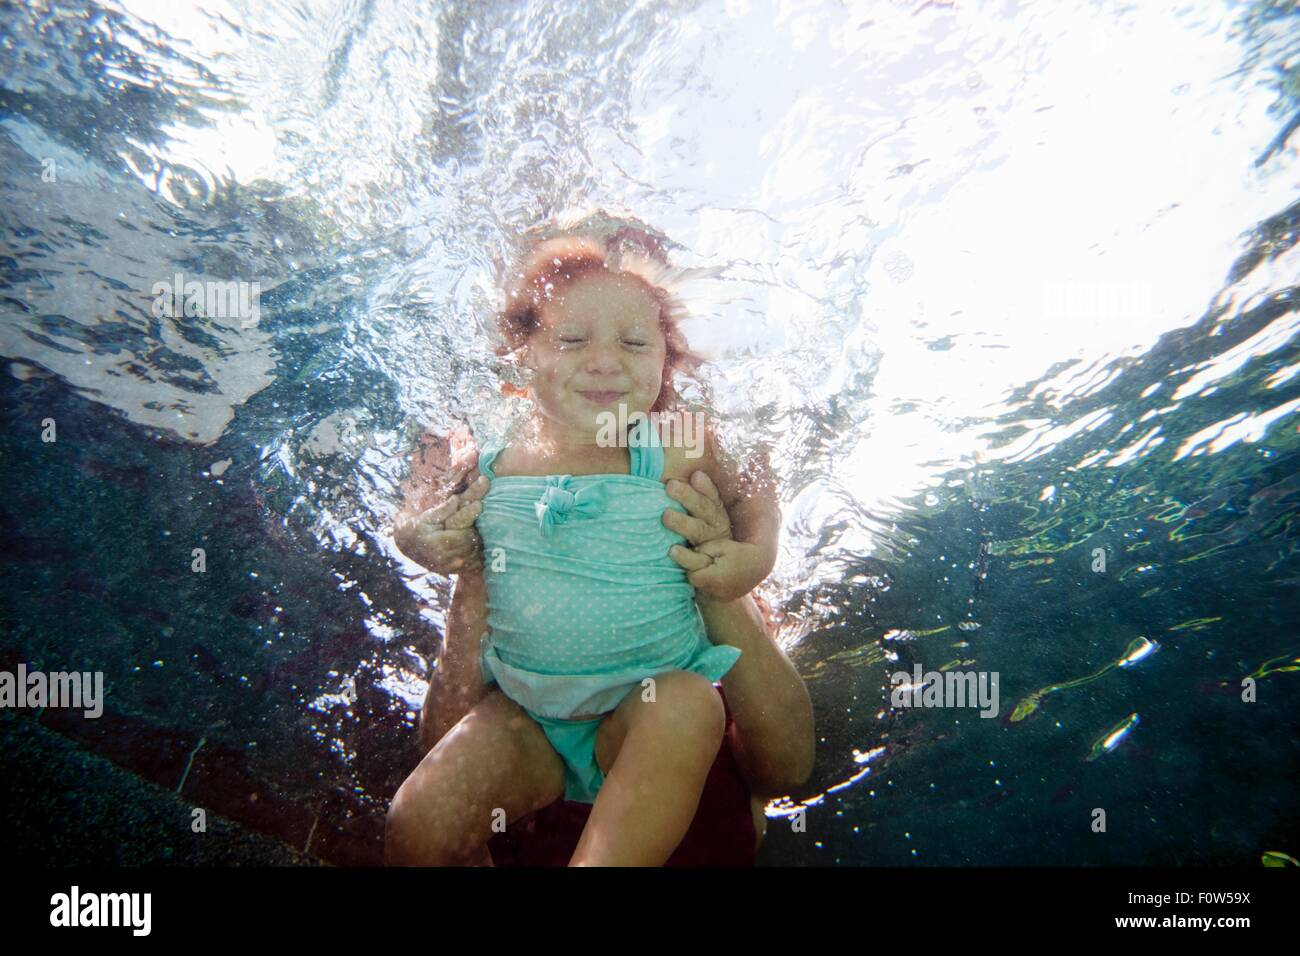 Underwater portrait of girl learning to swim and smiling at camera - Stock Image